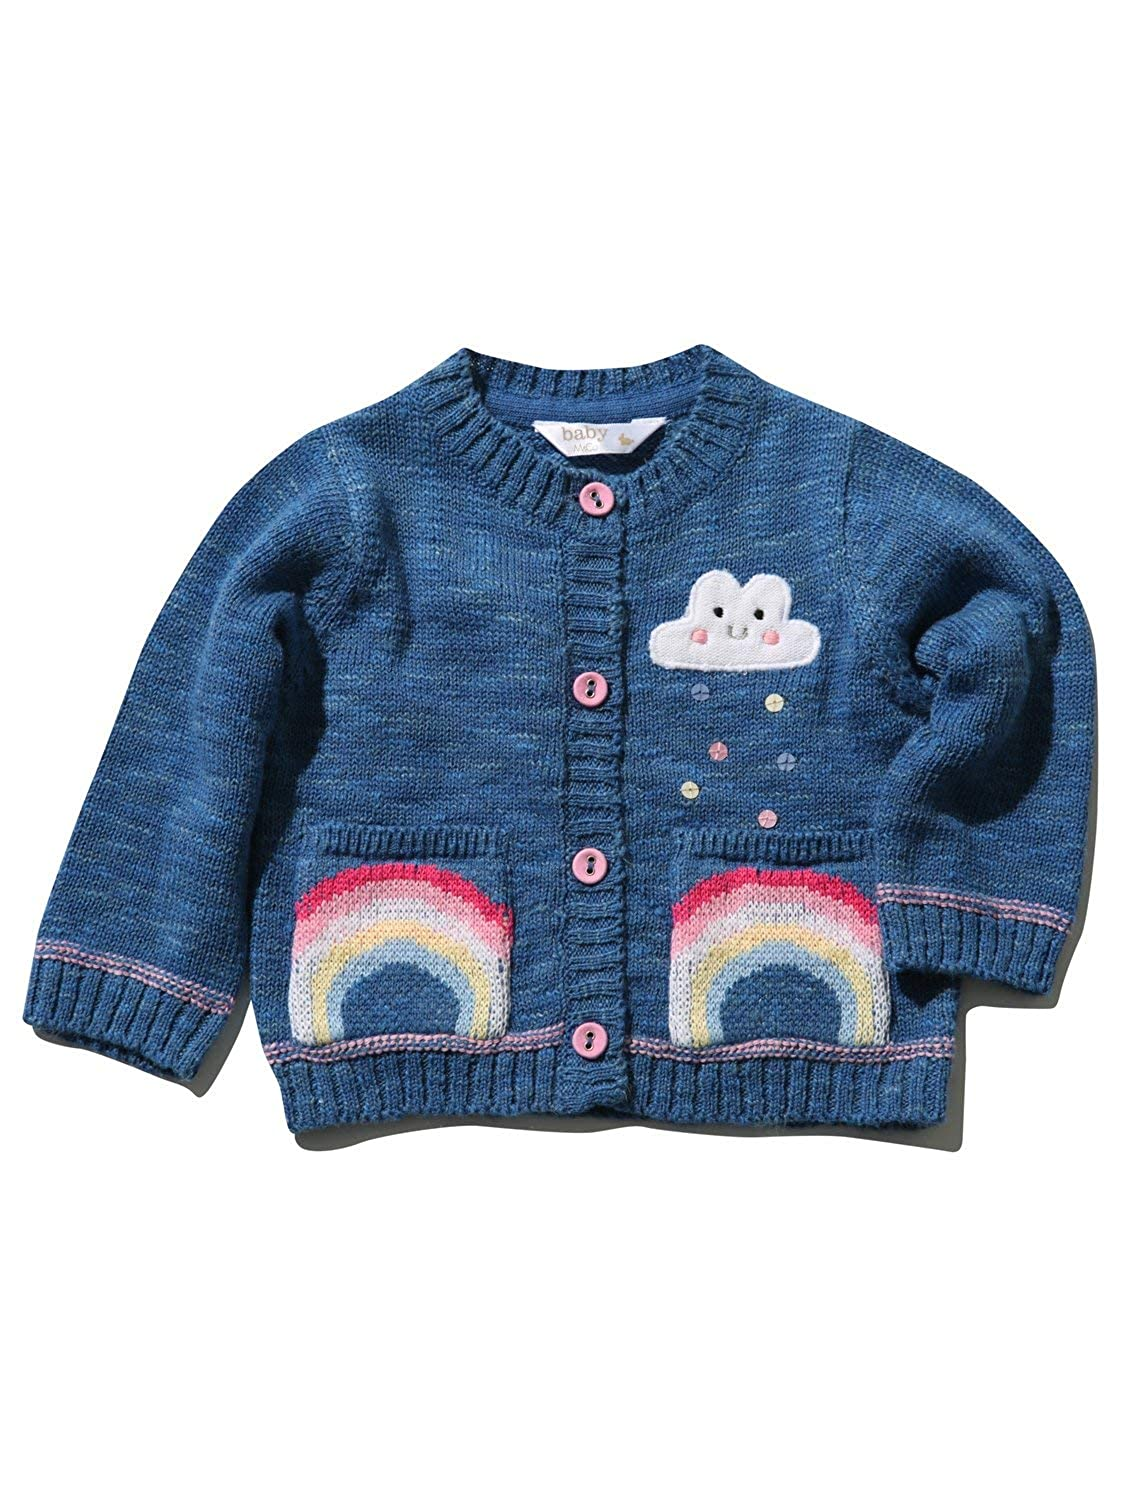 M&Co Baby Girls Cotton Long Sleeve Ribbed Trim Embroidered Rainbow Cardigan